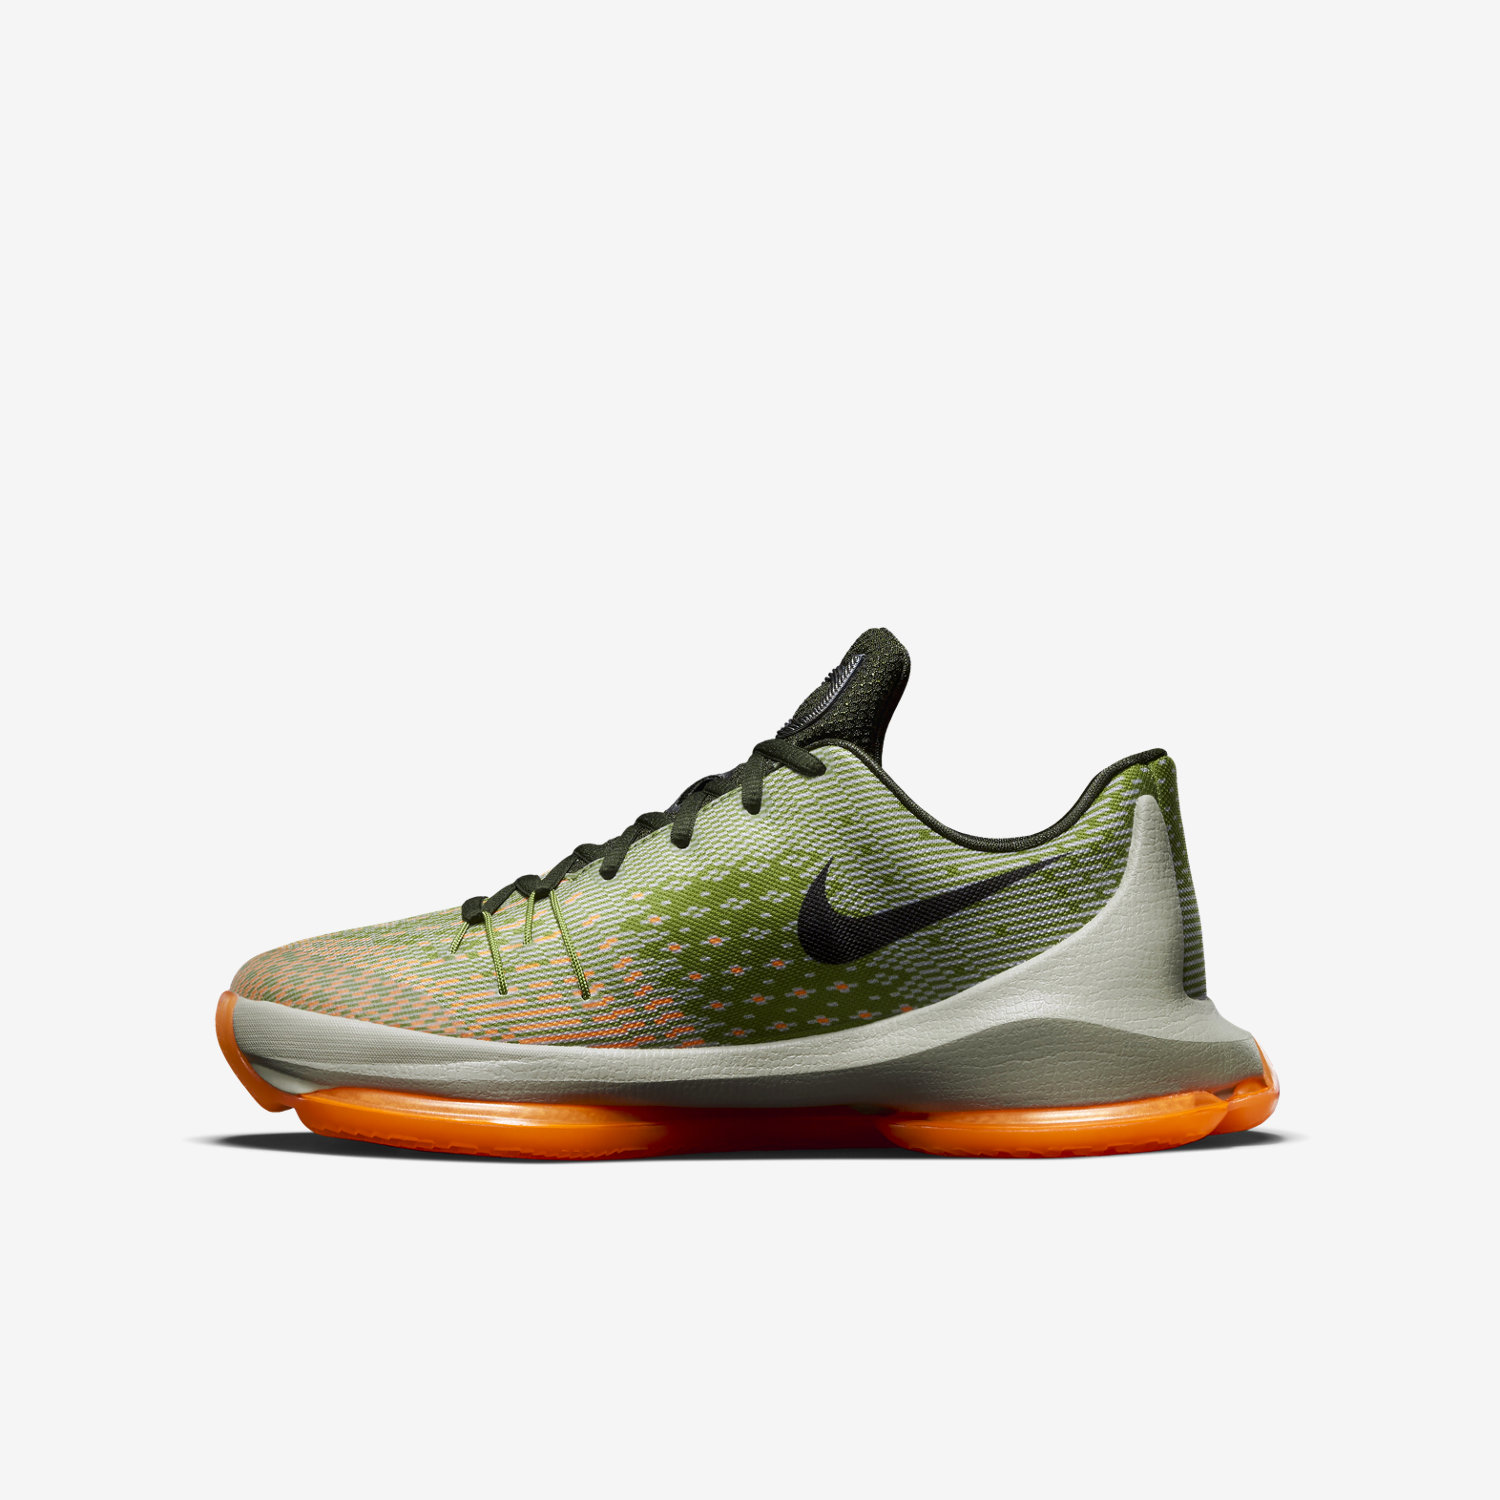 competitive price d32c5 8870a ... KD 8 Big Kids  Basketball Shoe. Nike. ...